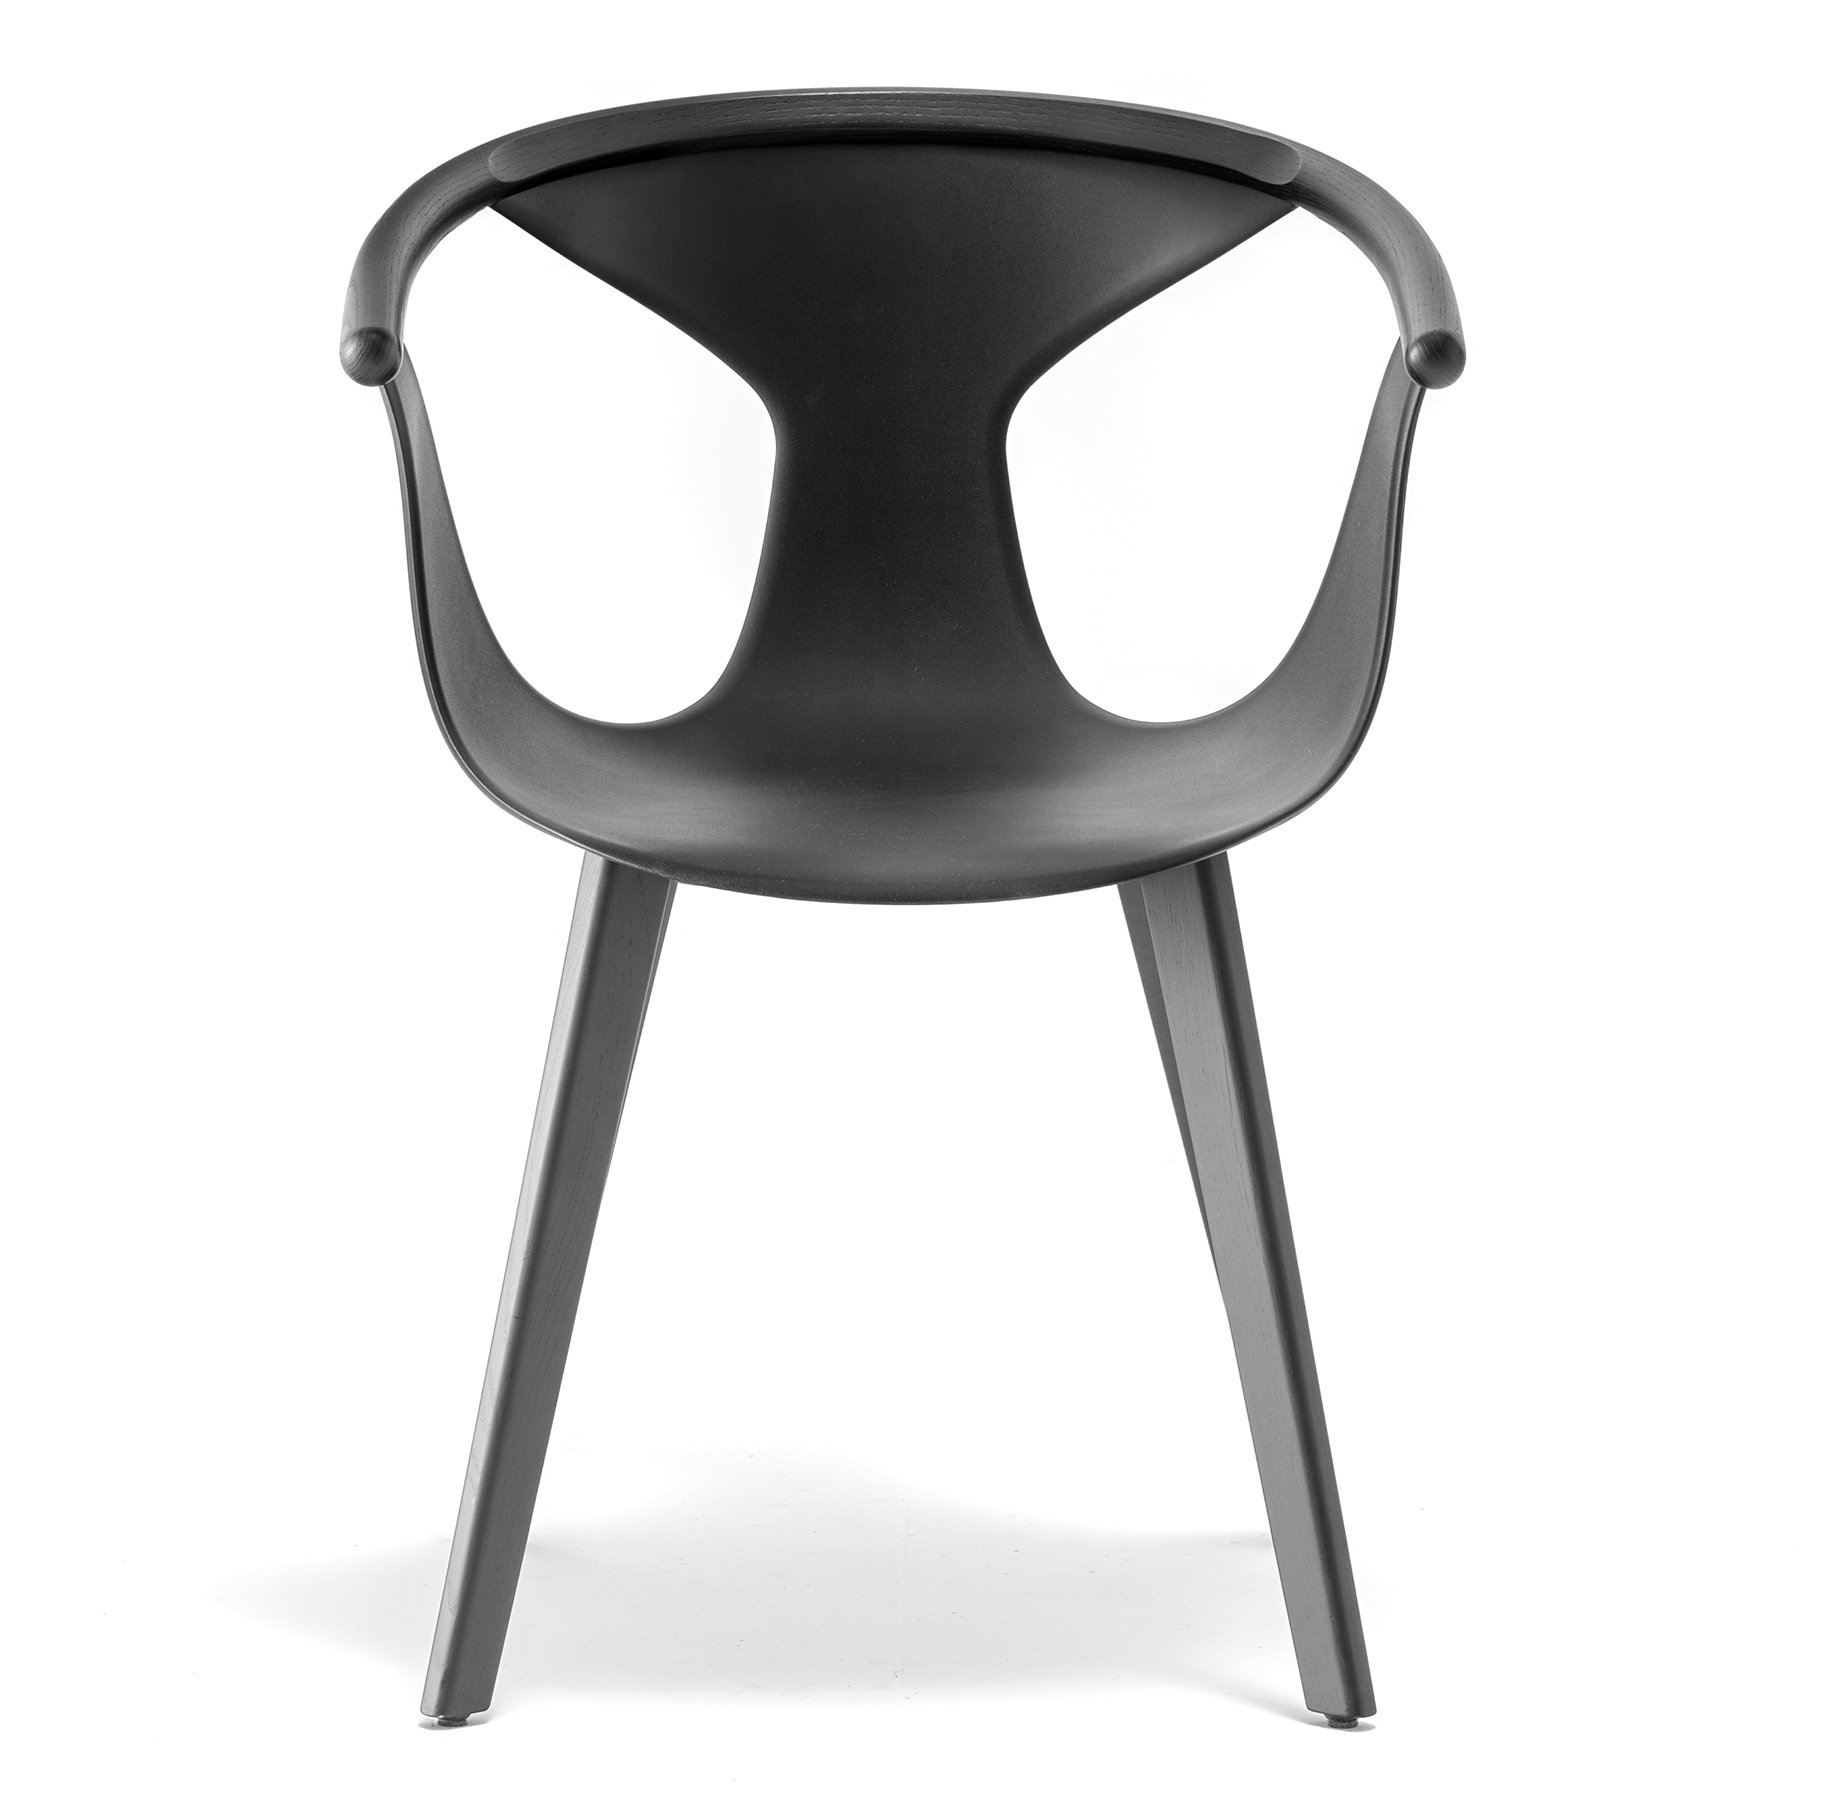 Fox 3725 chair from Pedrali, designed by Patrick Norguet